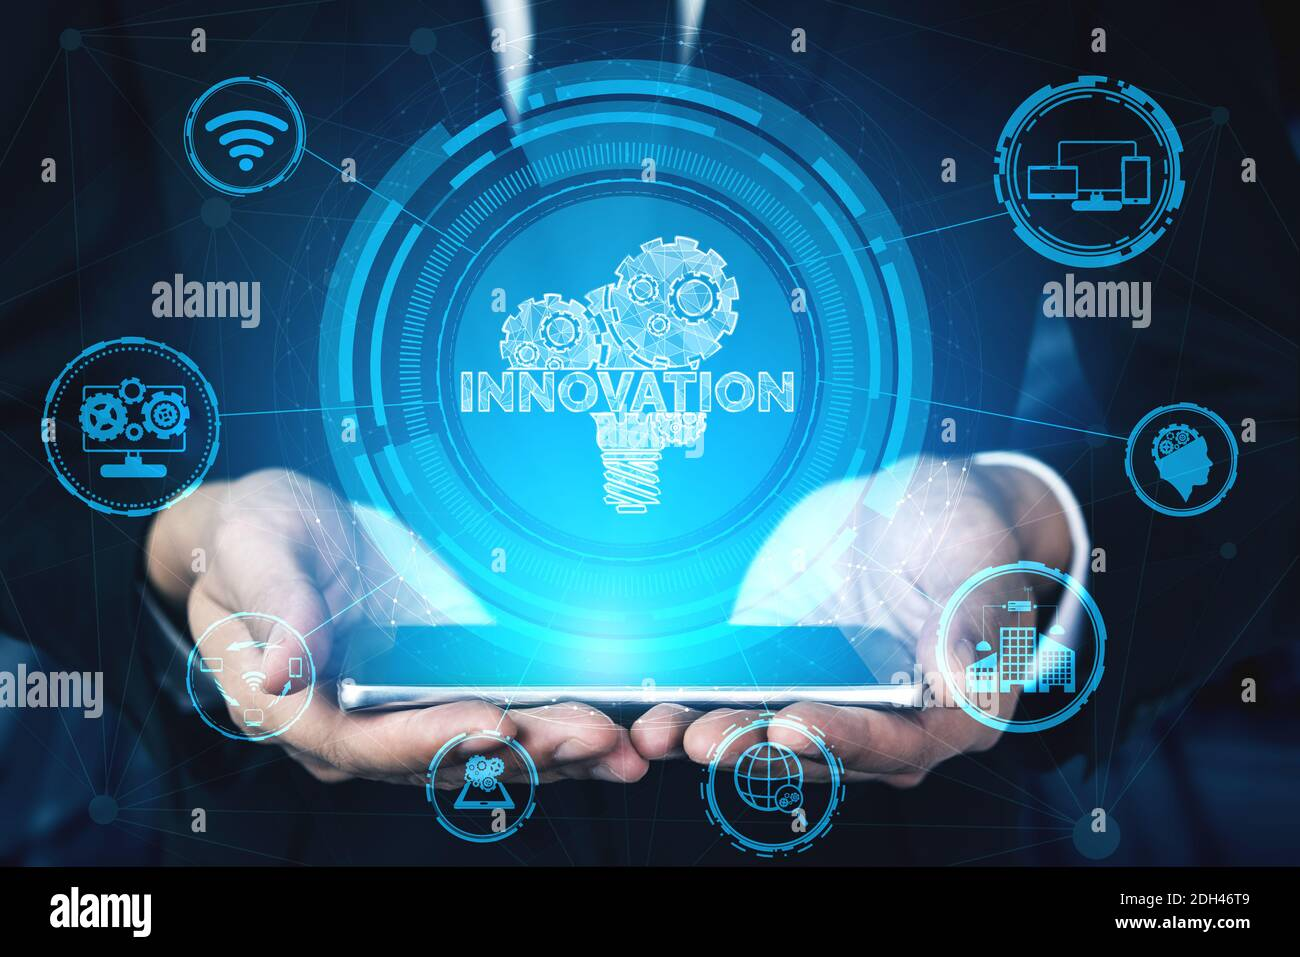 Innovation Technology for Business Finance Concept. Modern graphic interface showing symbol of innovative ideas thinking, research and development Stock Photo